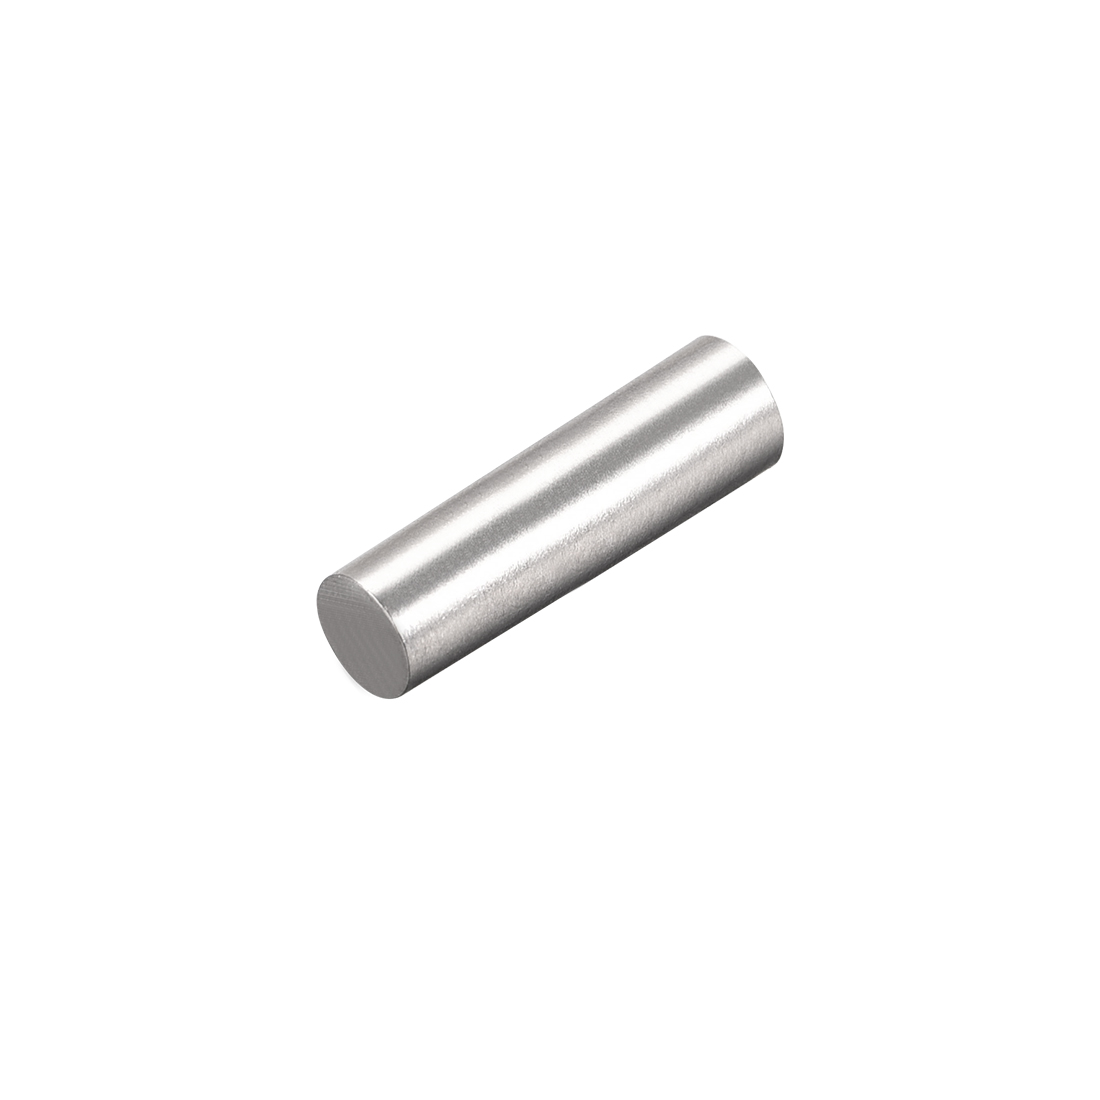 4mm x 20mm 1:50 Taper Pin 304 Stainless Steel Shelf Support Pin Fasten Elements